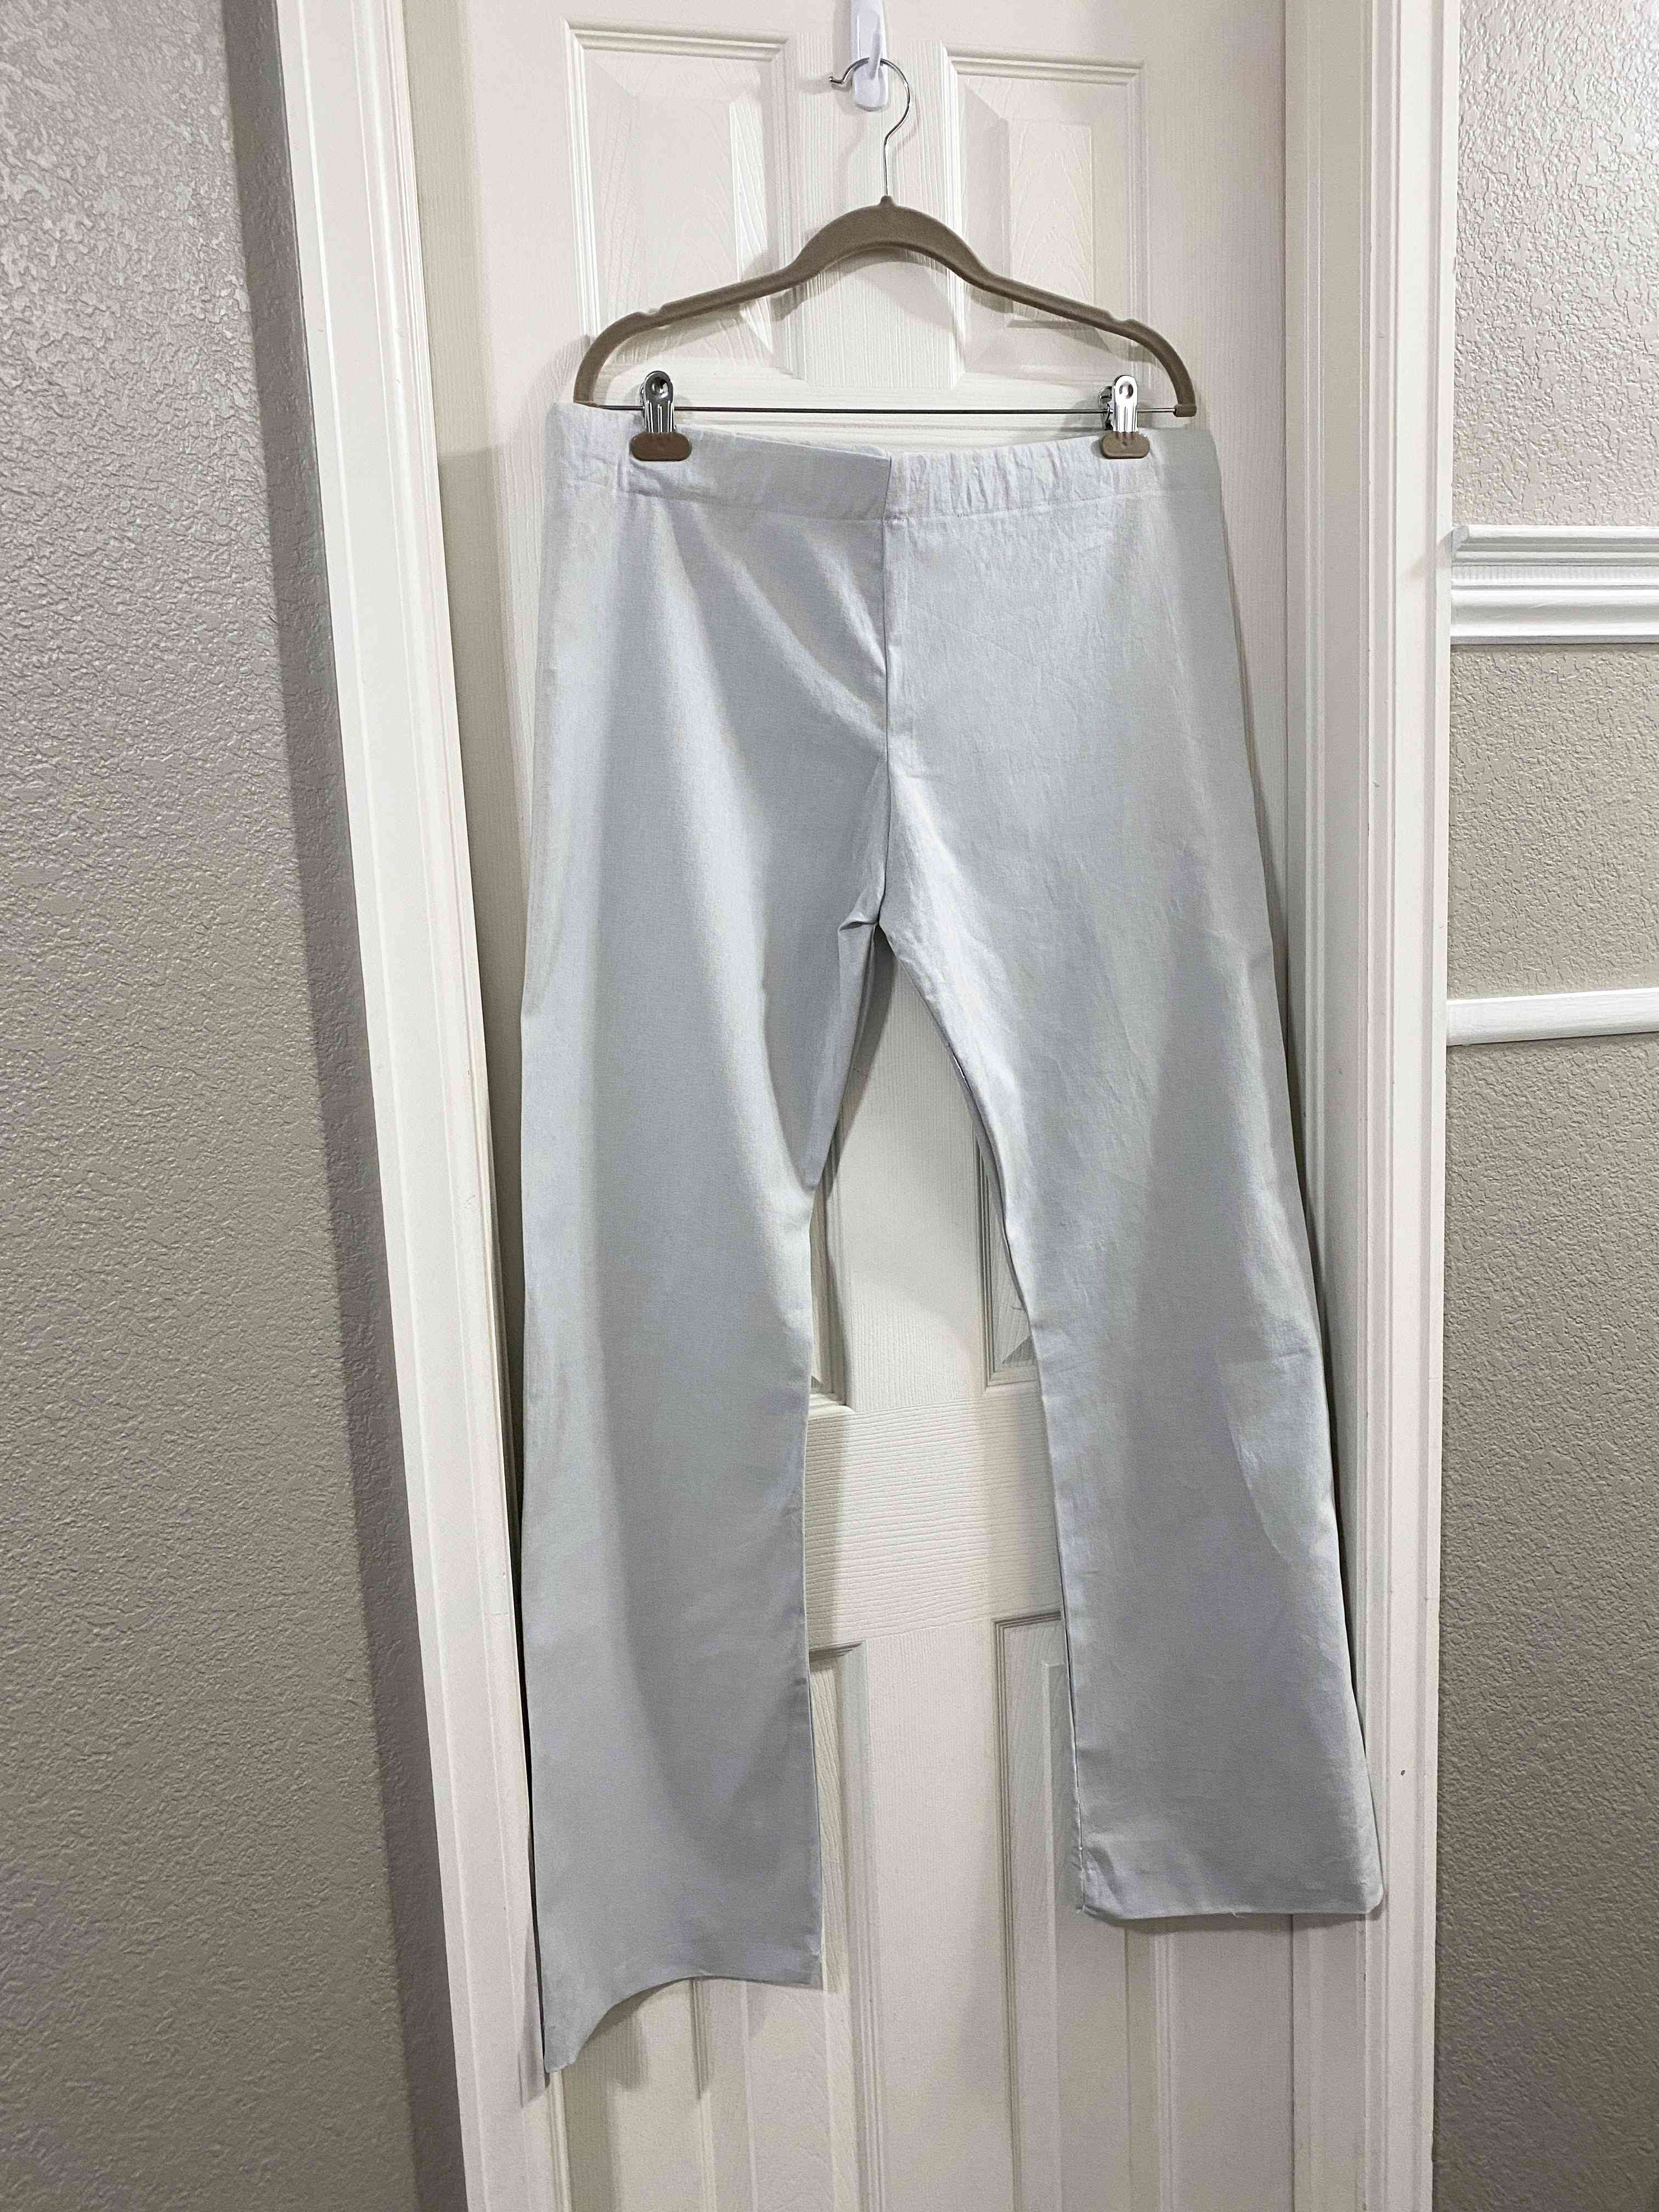 A pair of pants hanging on a door